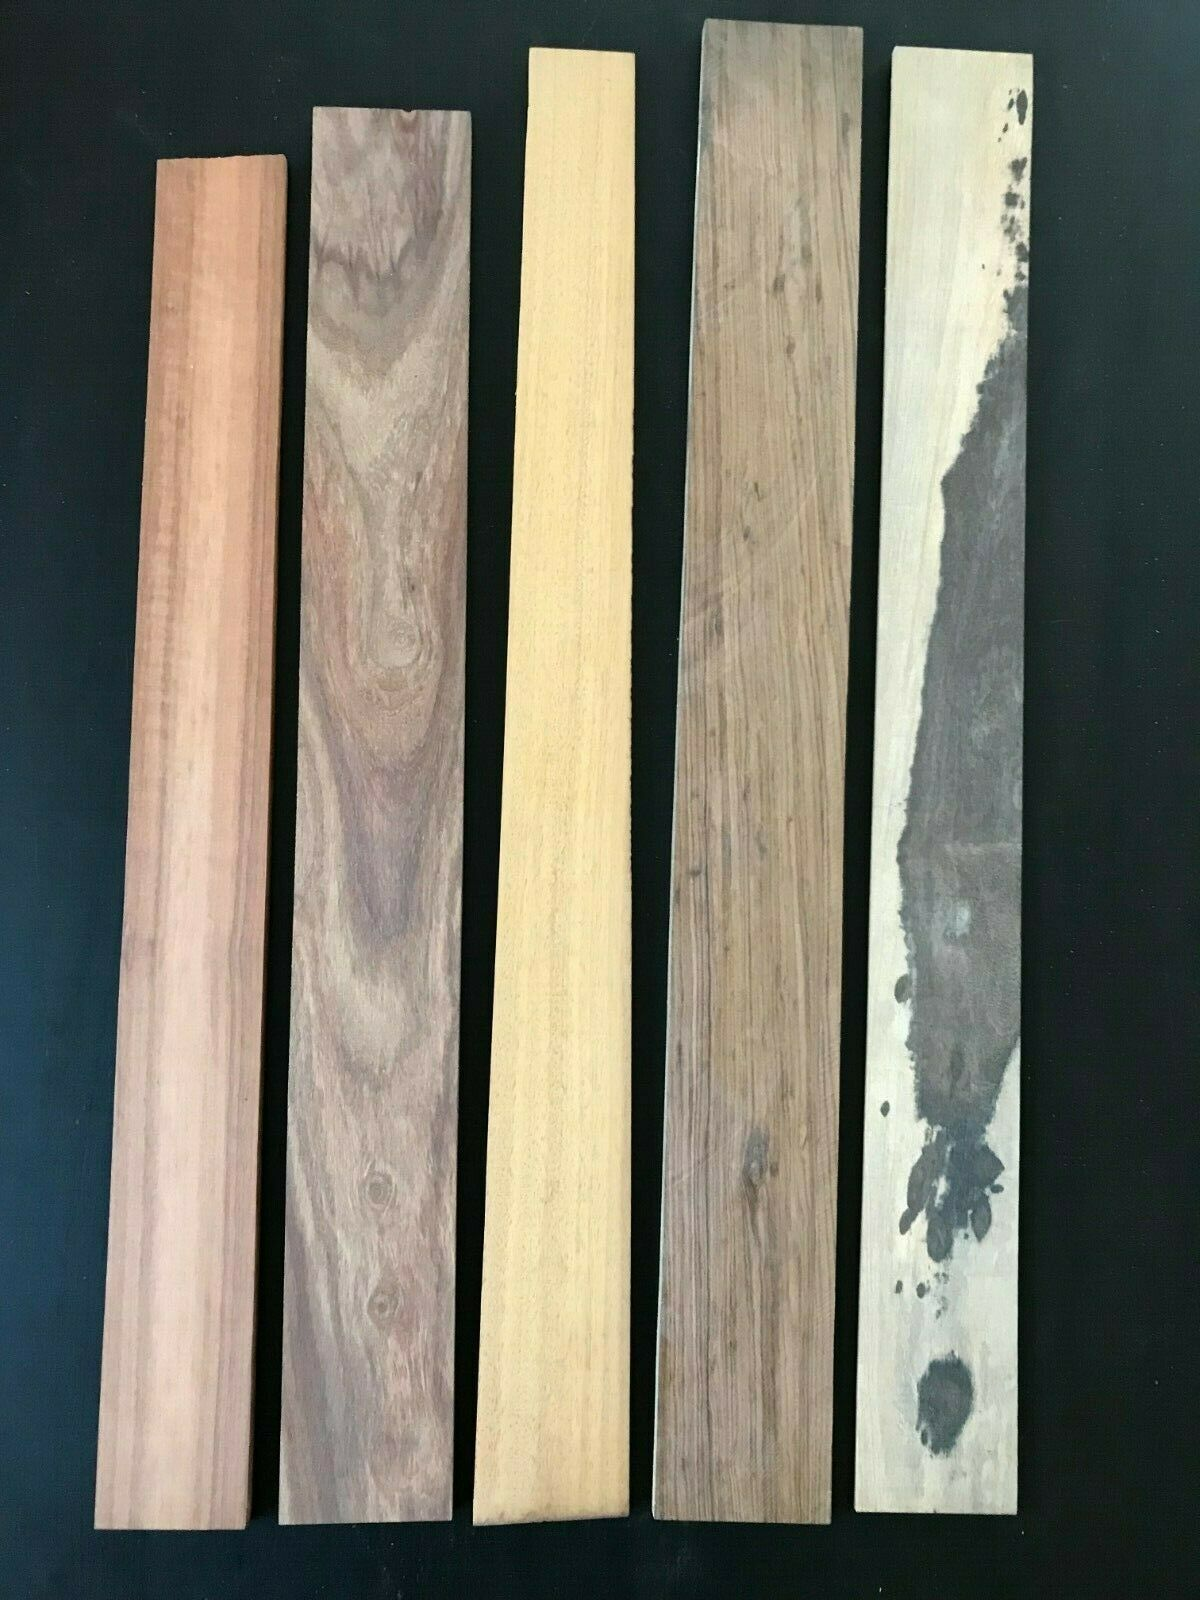 SALE 55% OFF – 5 BASS GUITAR FINGERBOARDS MIXED GRADING AND TONEWOOD LOT2